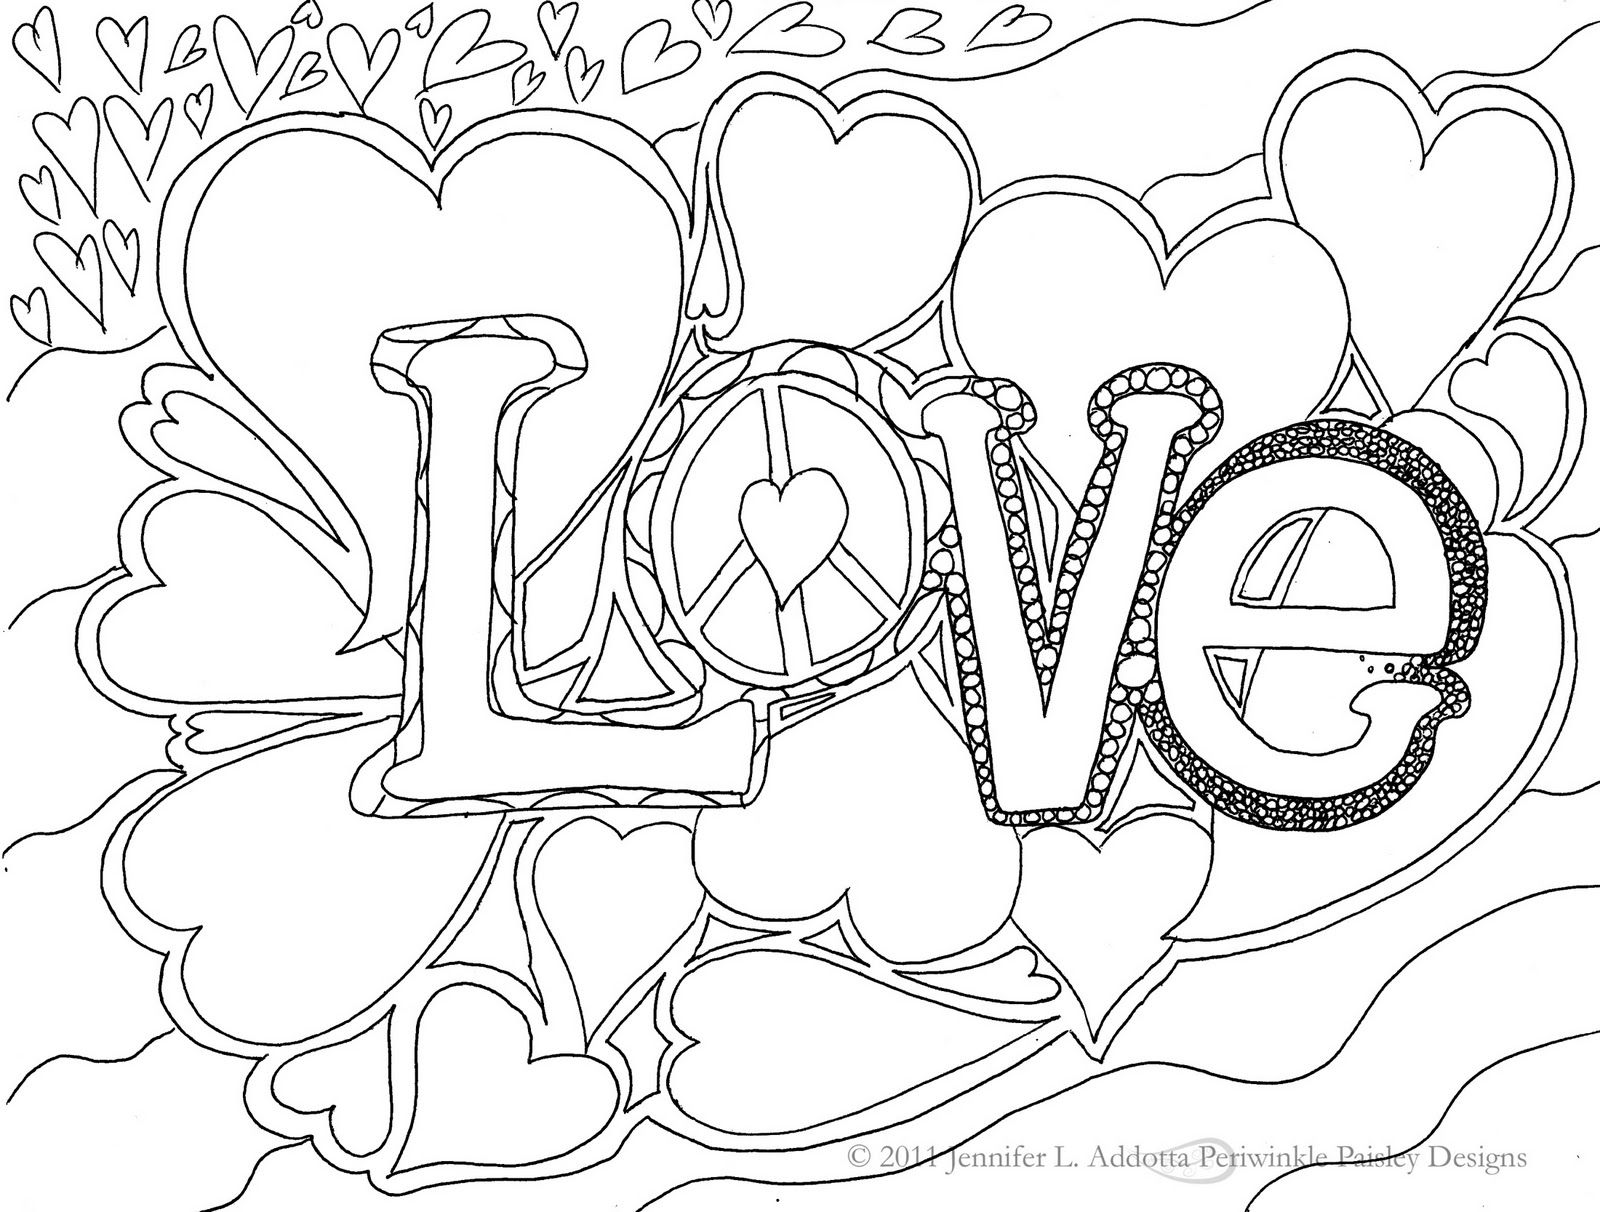 Printable coloring pages with words - Free Printable Mosaic Coloring Pages Sketch Template Mosaic